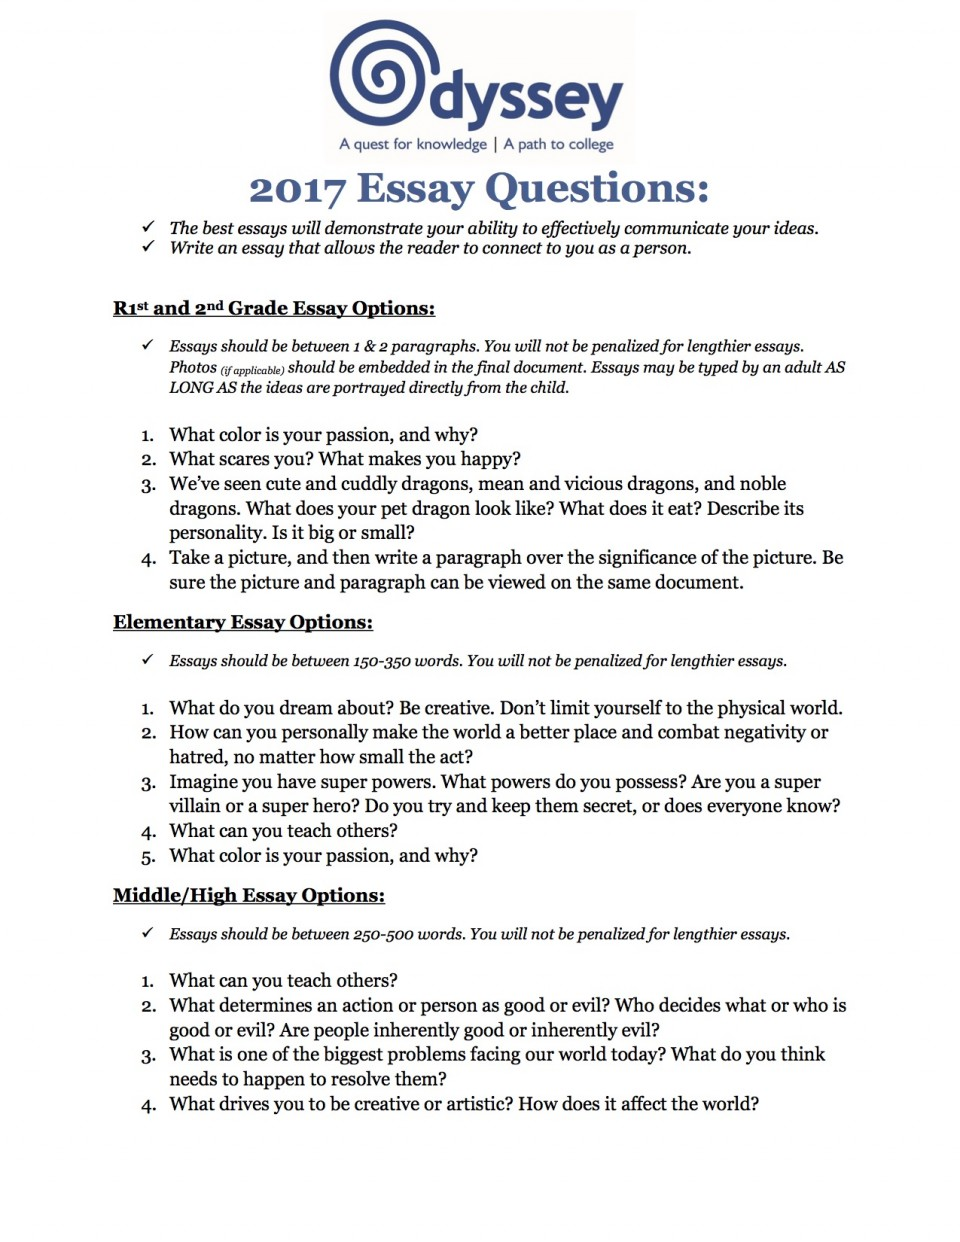 002 Odyssey Essay Topics 5829f1d2c75f9a7c5588b1c6 Proposed20essay20topics202017 Amazing Hero Prompt 960